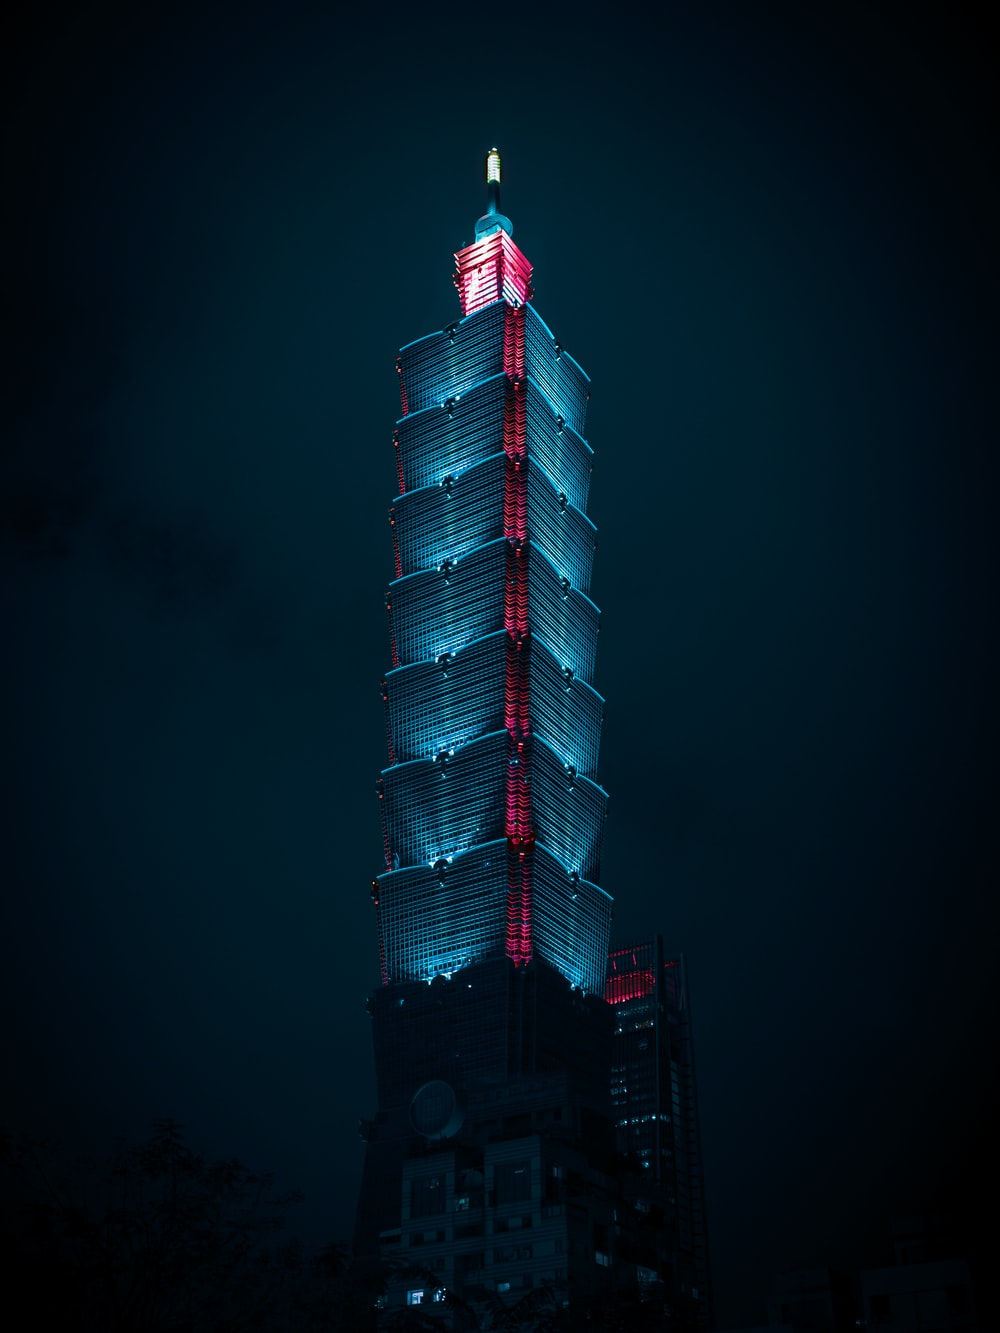 red and white tower during night time